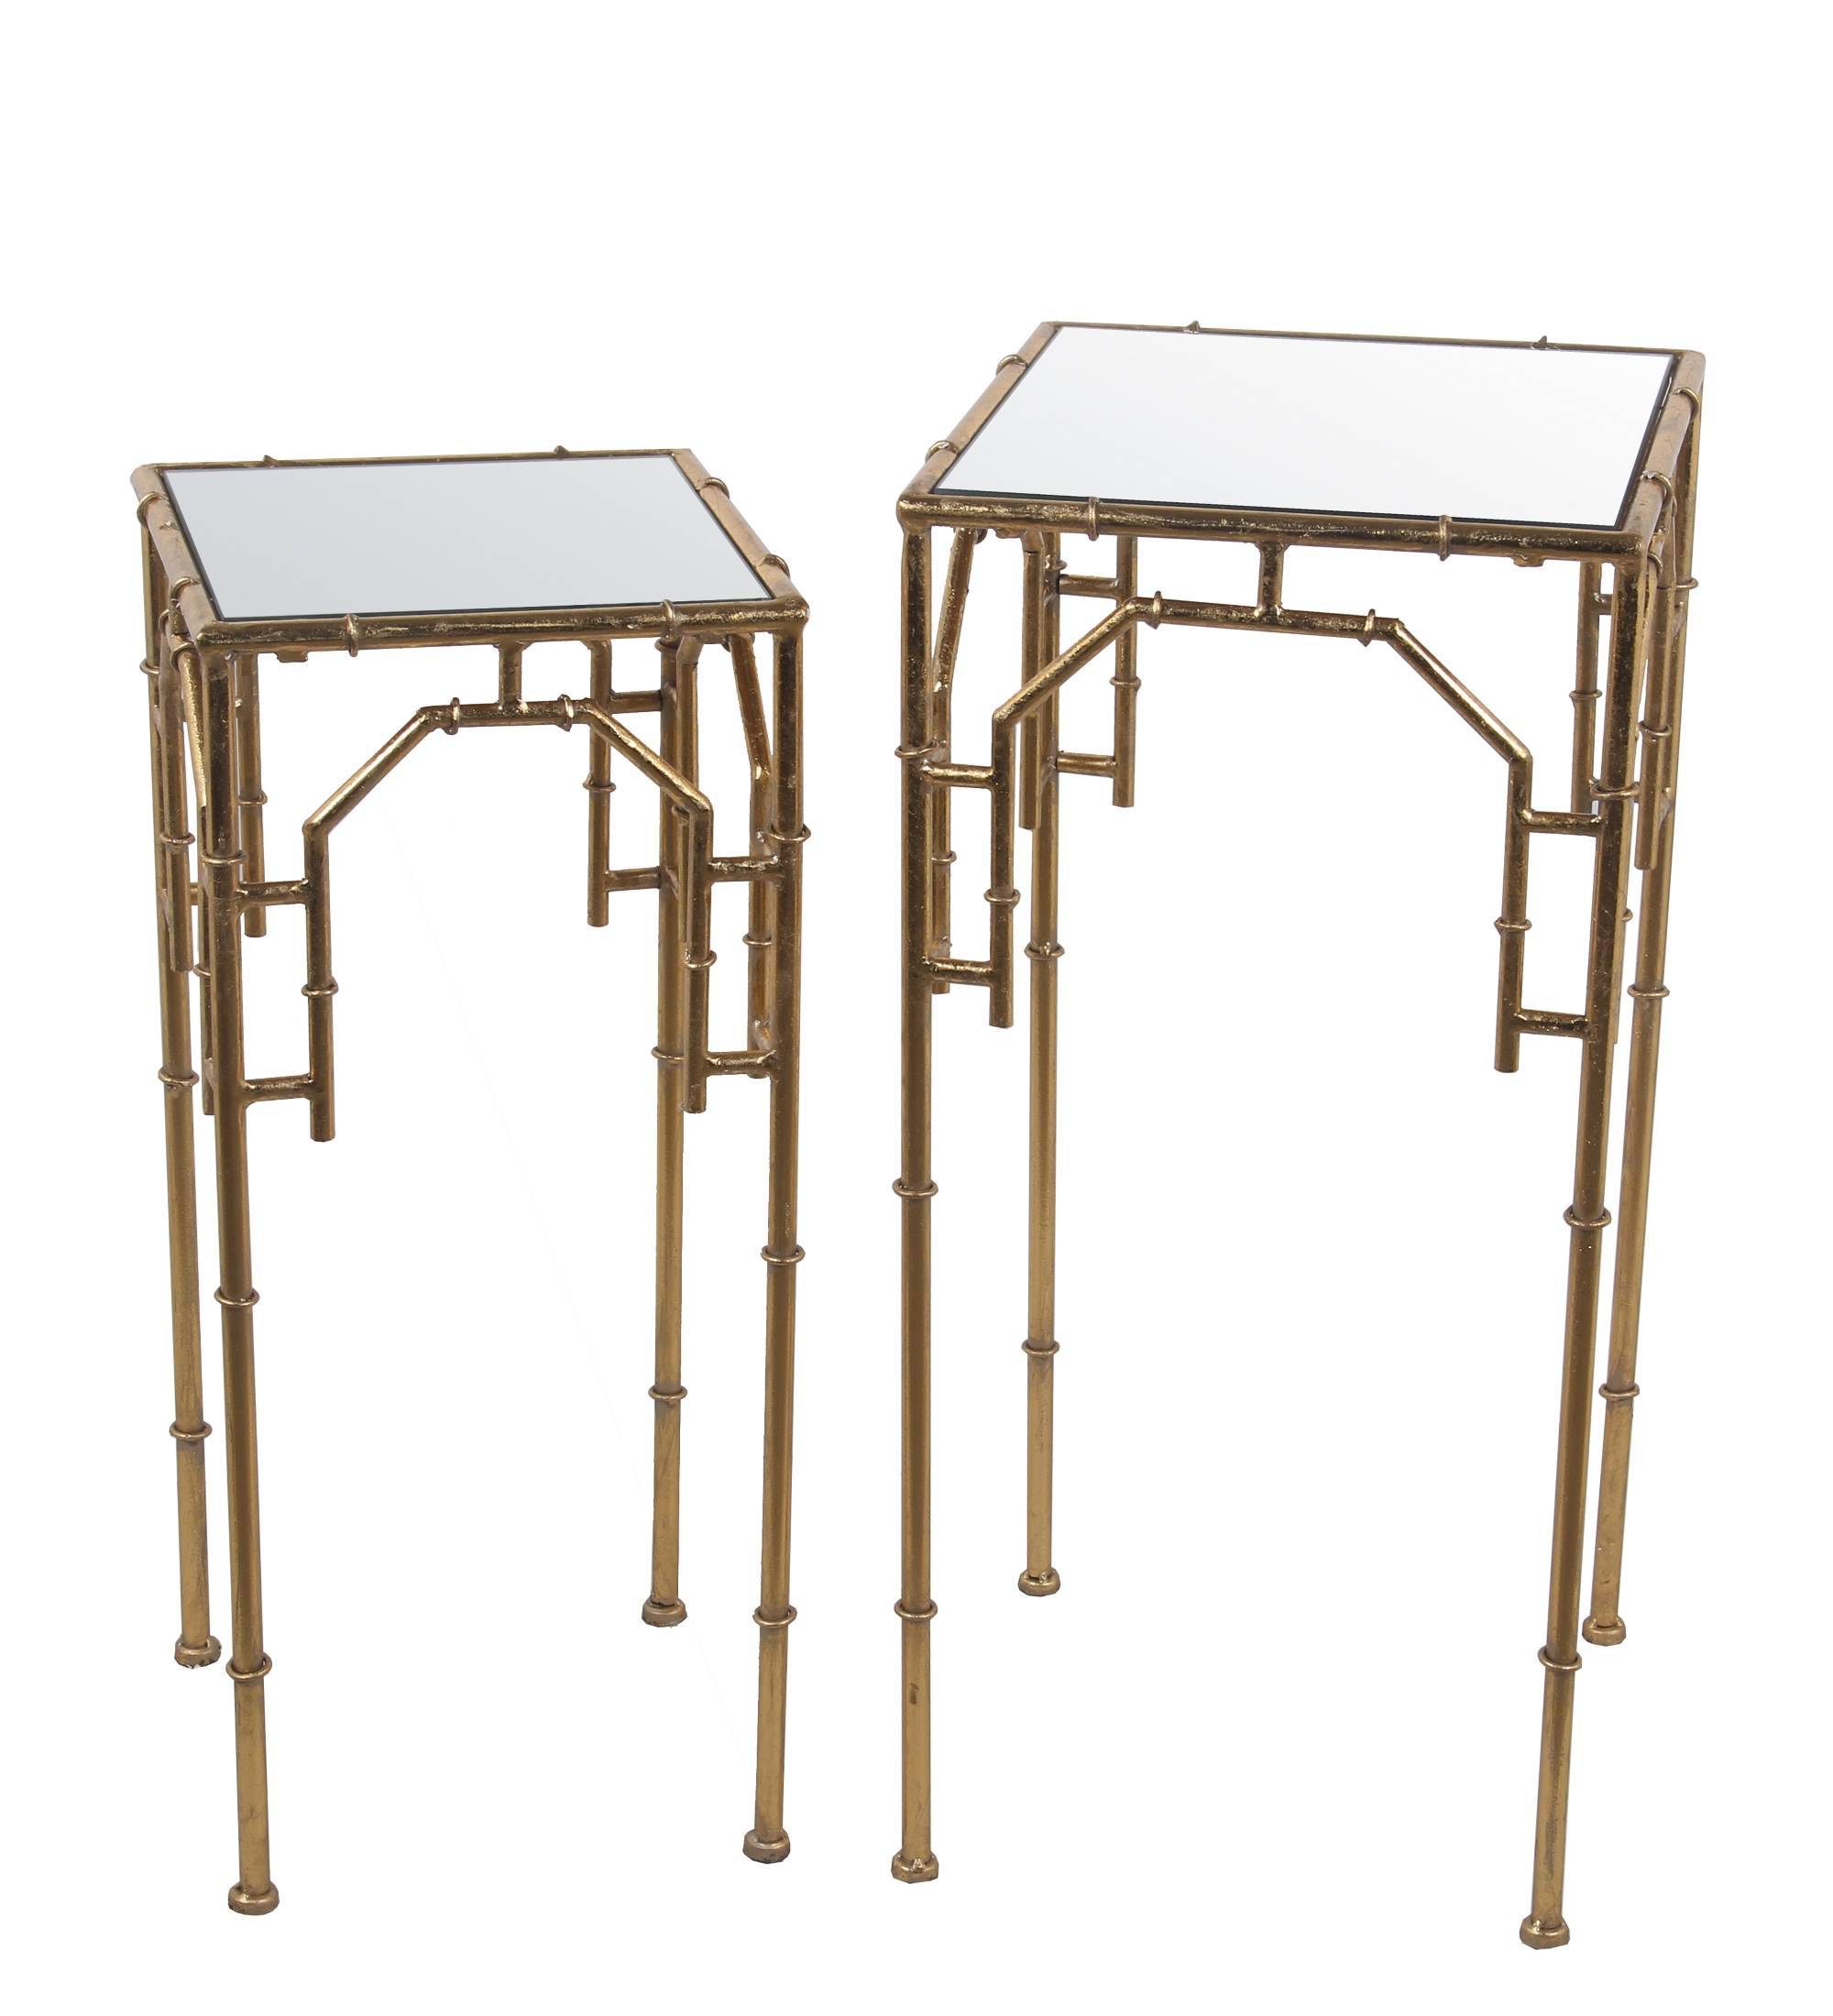 2 Pc Plant Stands - Gold Leaf